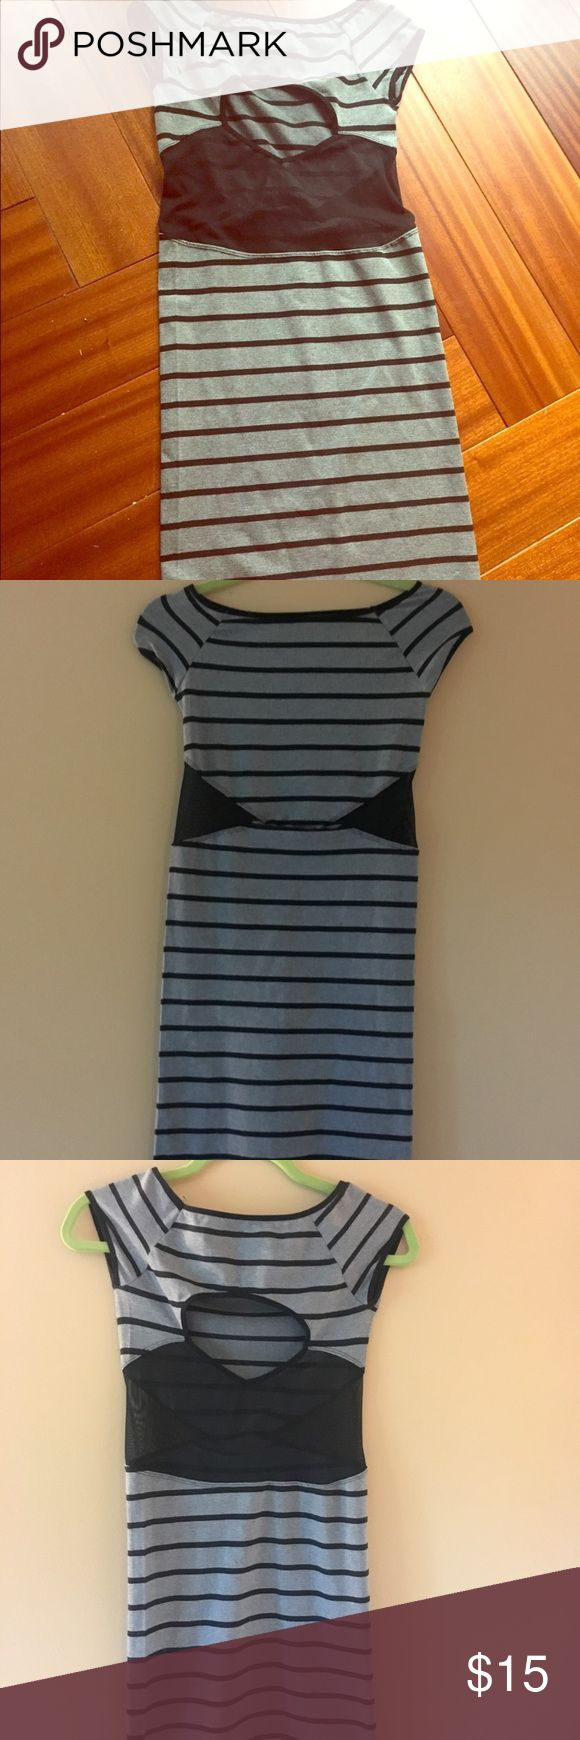 Gray and black midi bodycon stripes&see thru dress Gray and black horizontal striped dress with sheer and see thru windows at sides and back, around waist. In perfect condition. Size Small Dresses